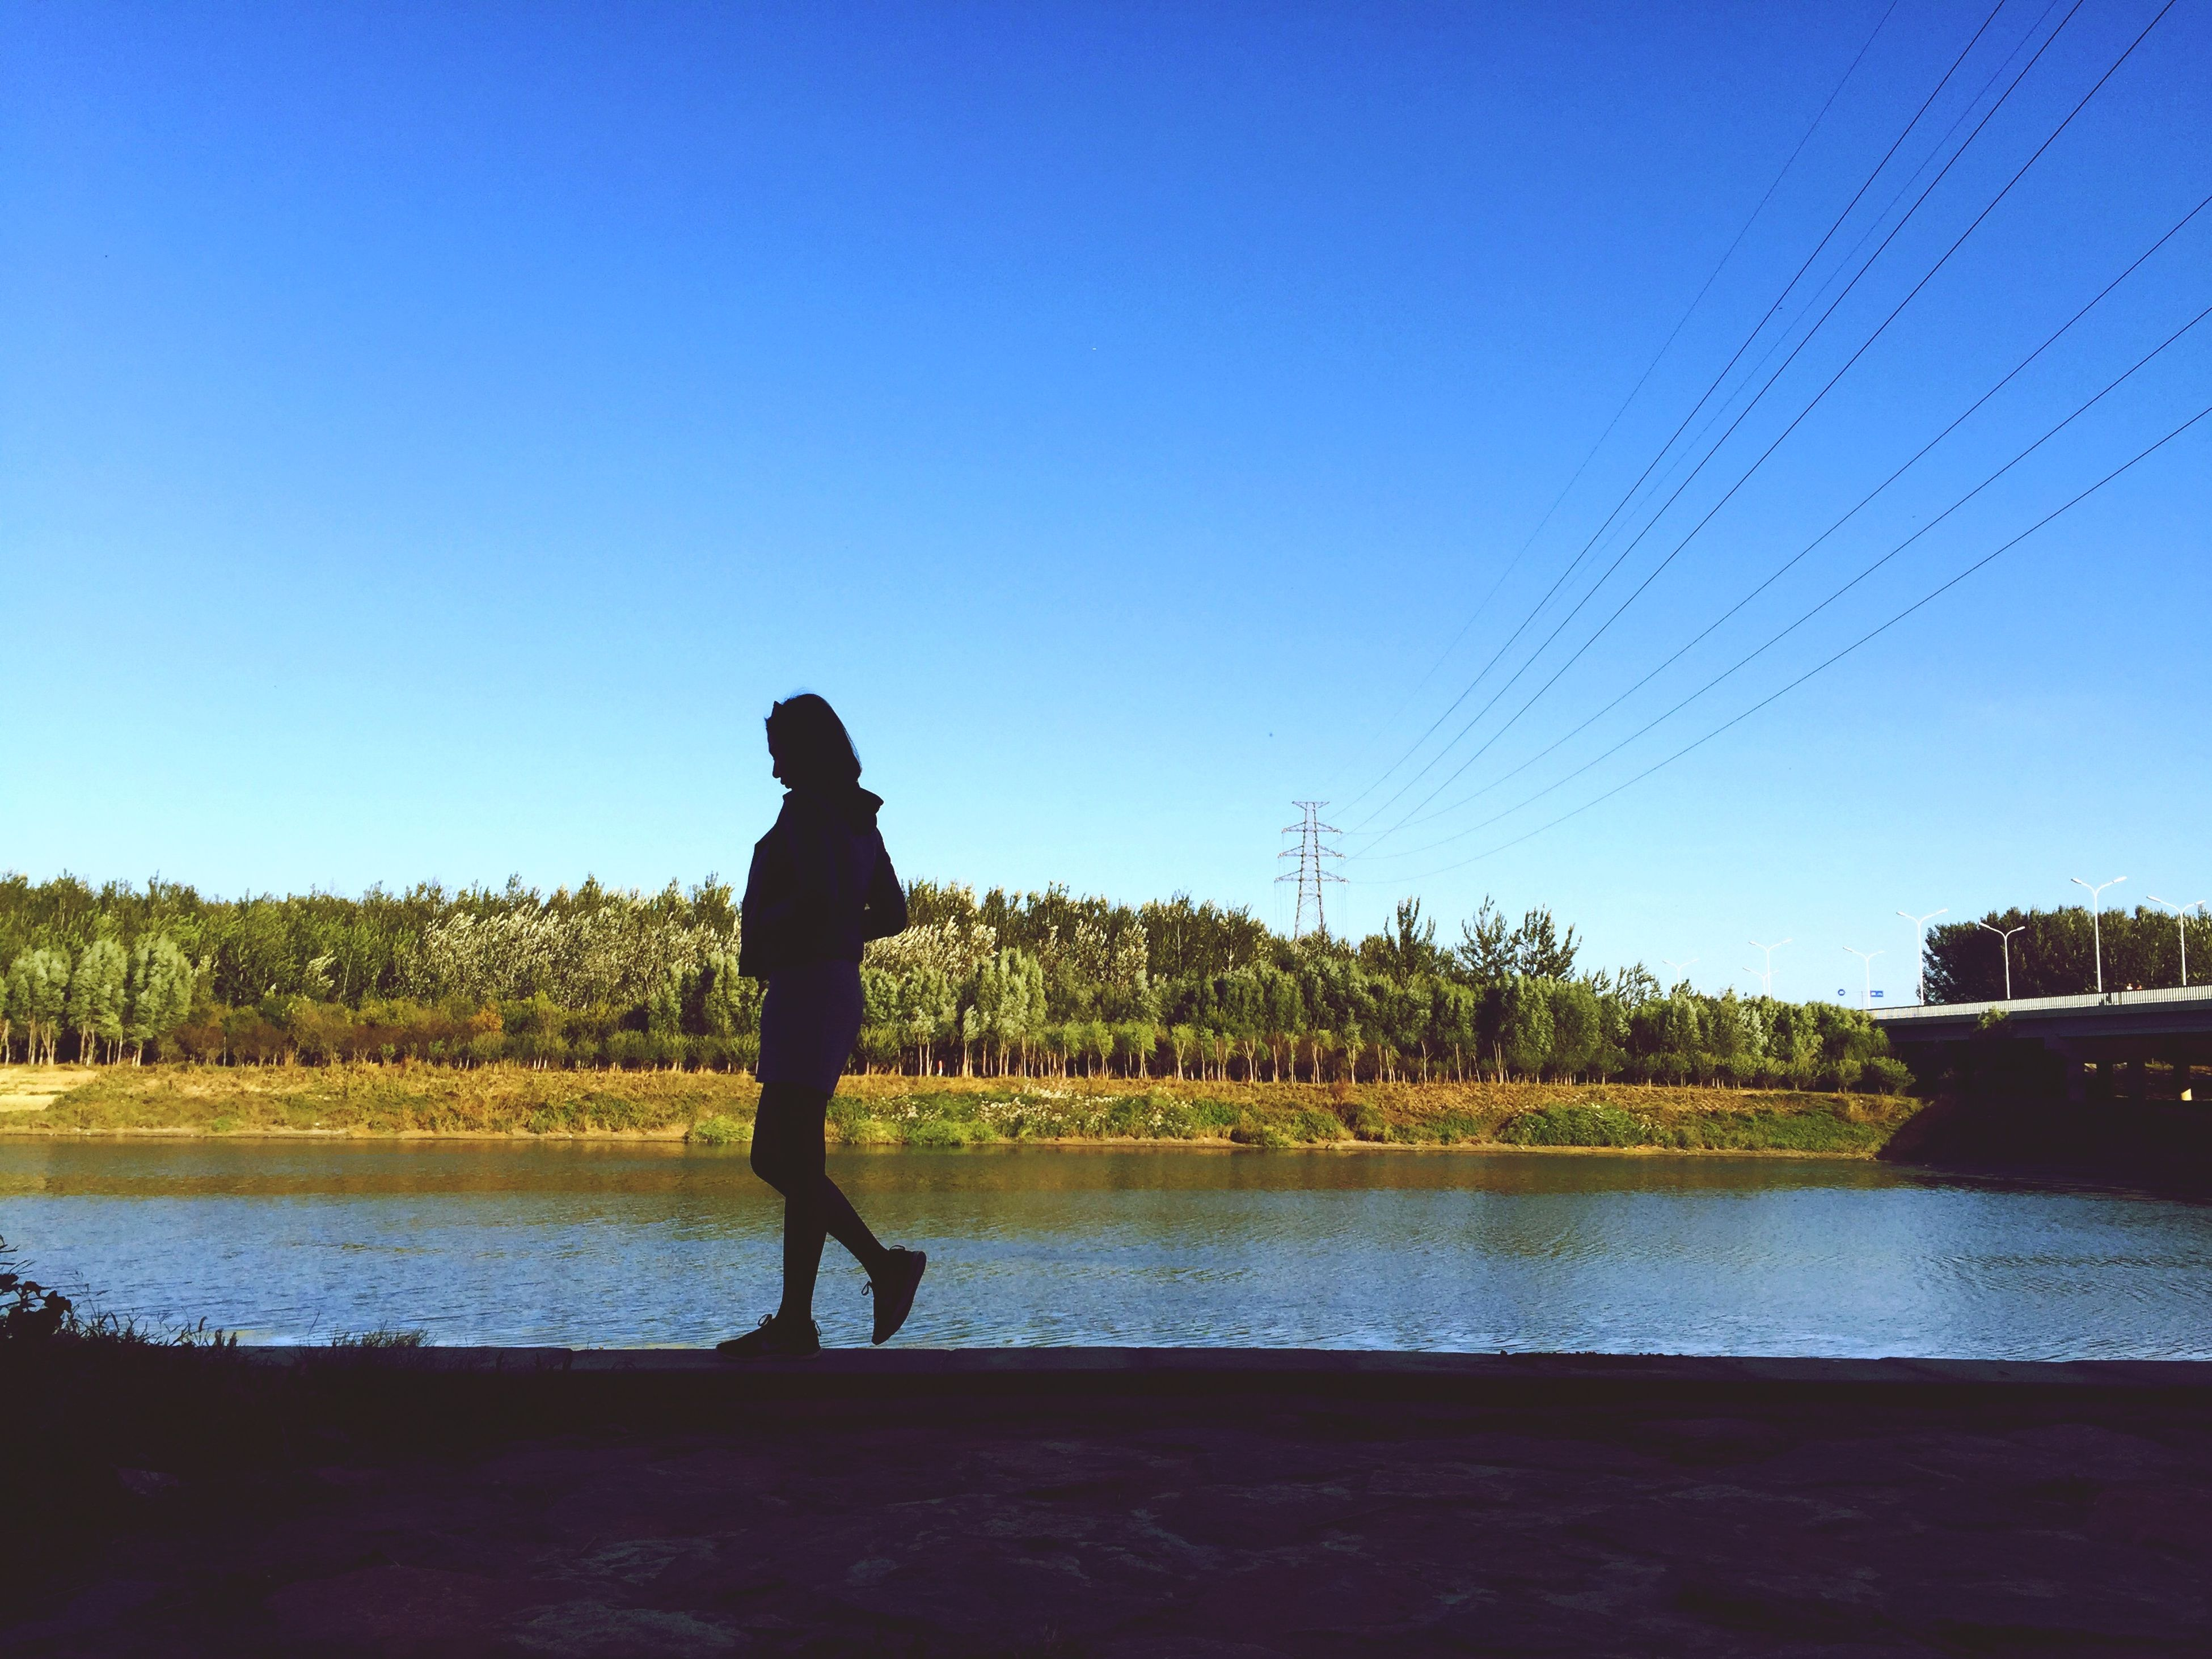 water, clear sky, full length, standing, rear view, lake, blue, lifestyles, leisure activity, copy space, tranquility, silhouette, tranquil scene, men, scenics, reflection, nature, walking